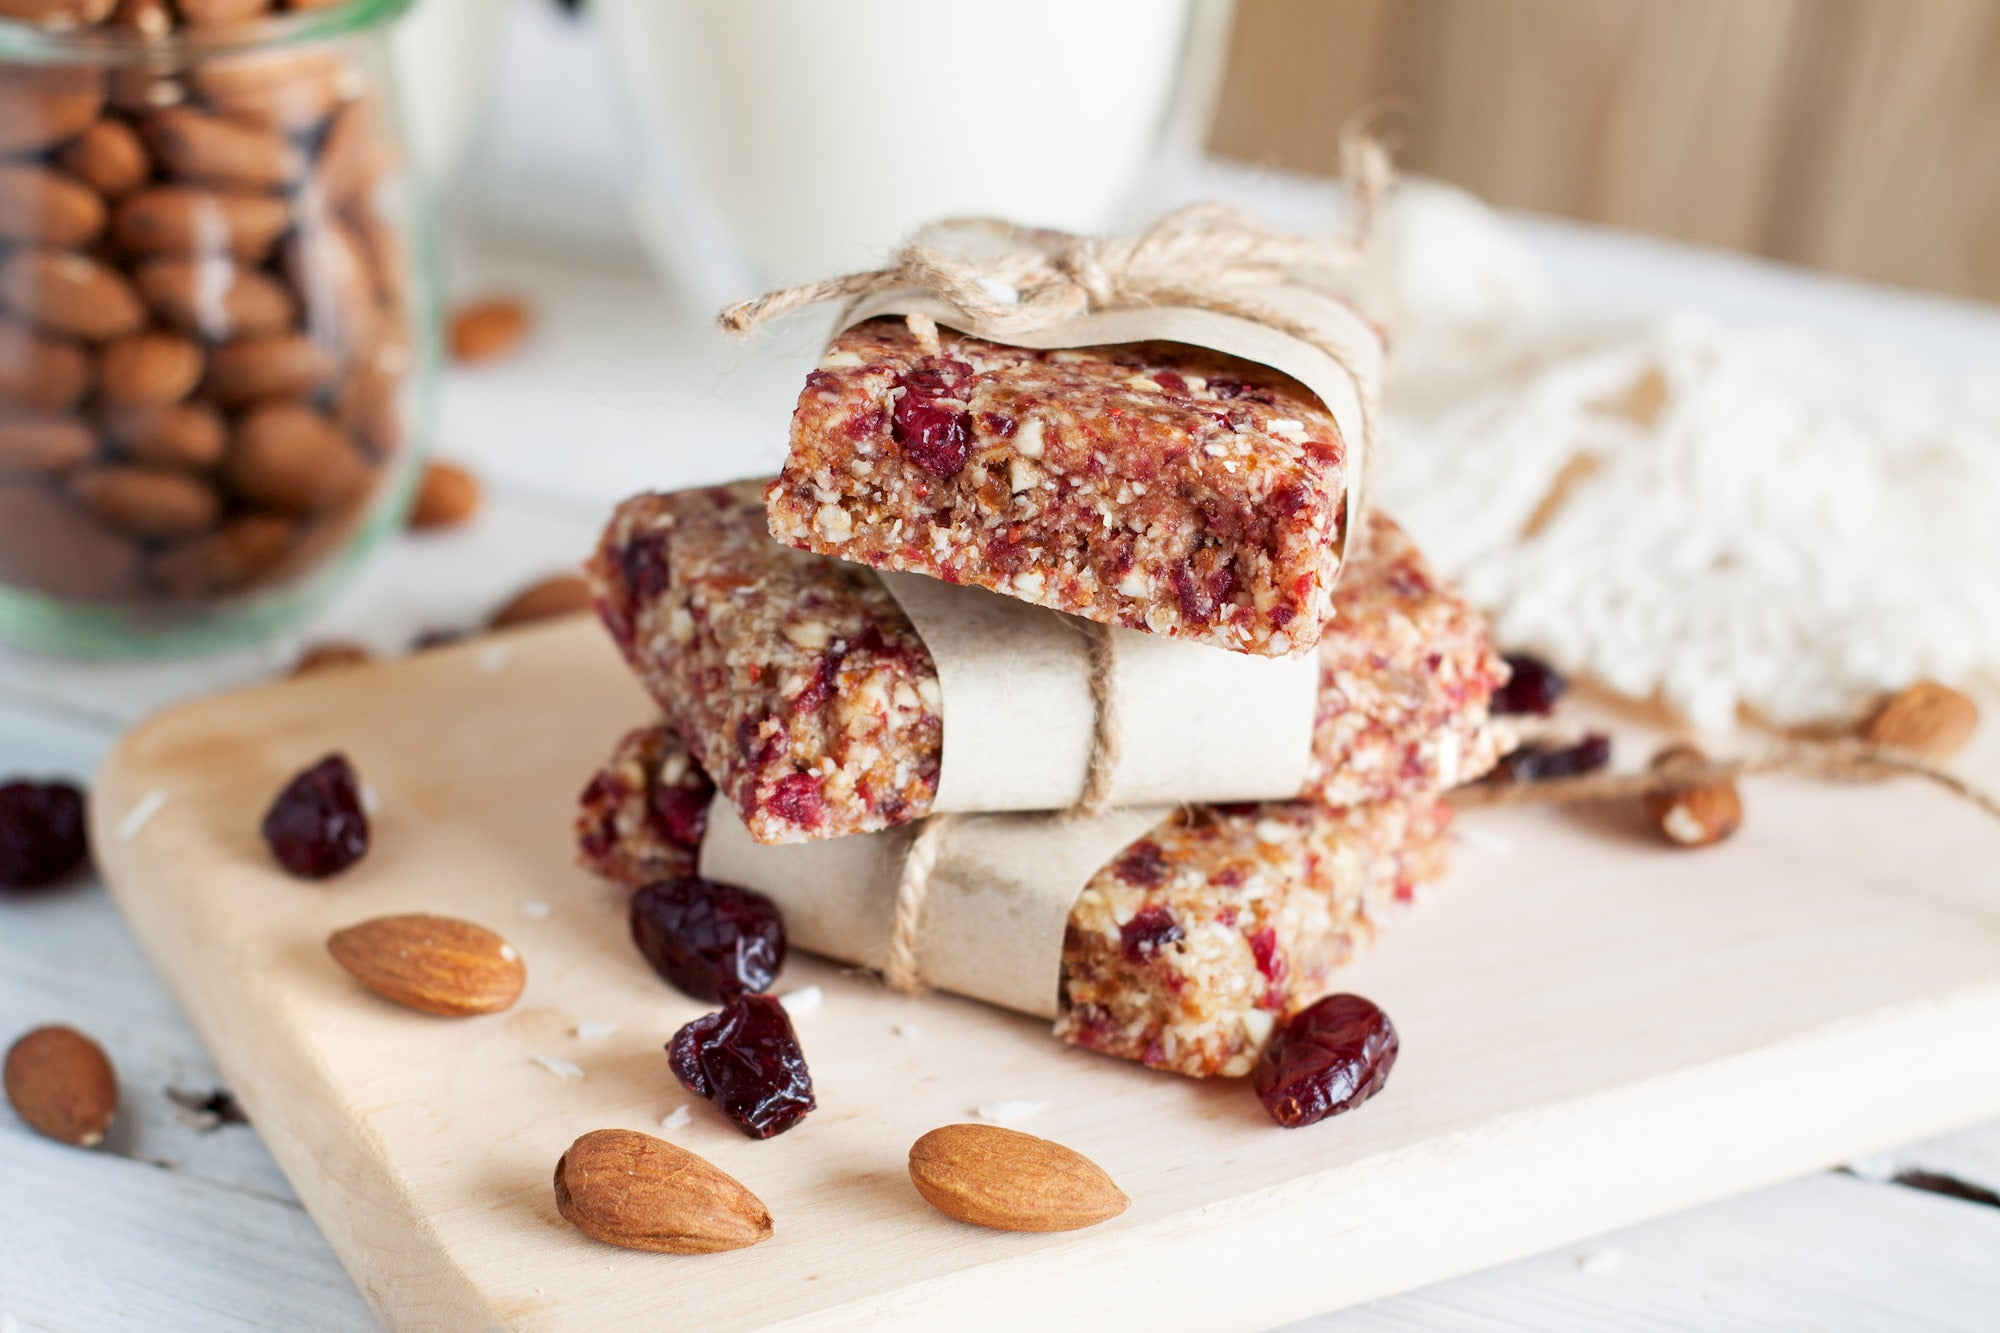 Energy bars stacked on top of one another on a cutting board